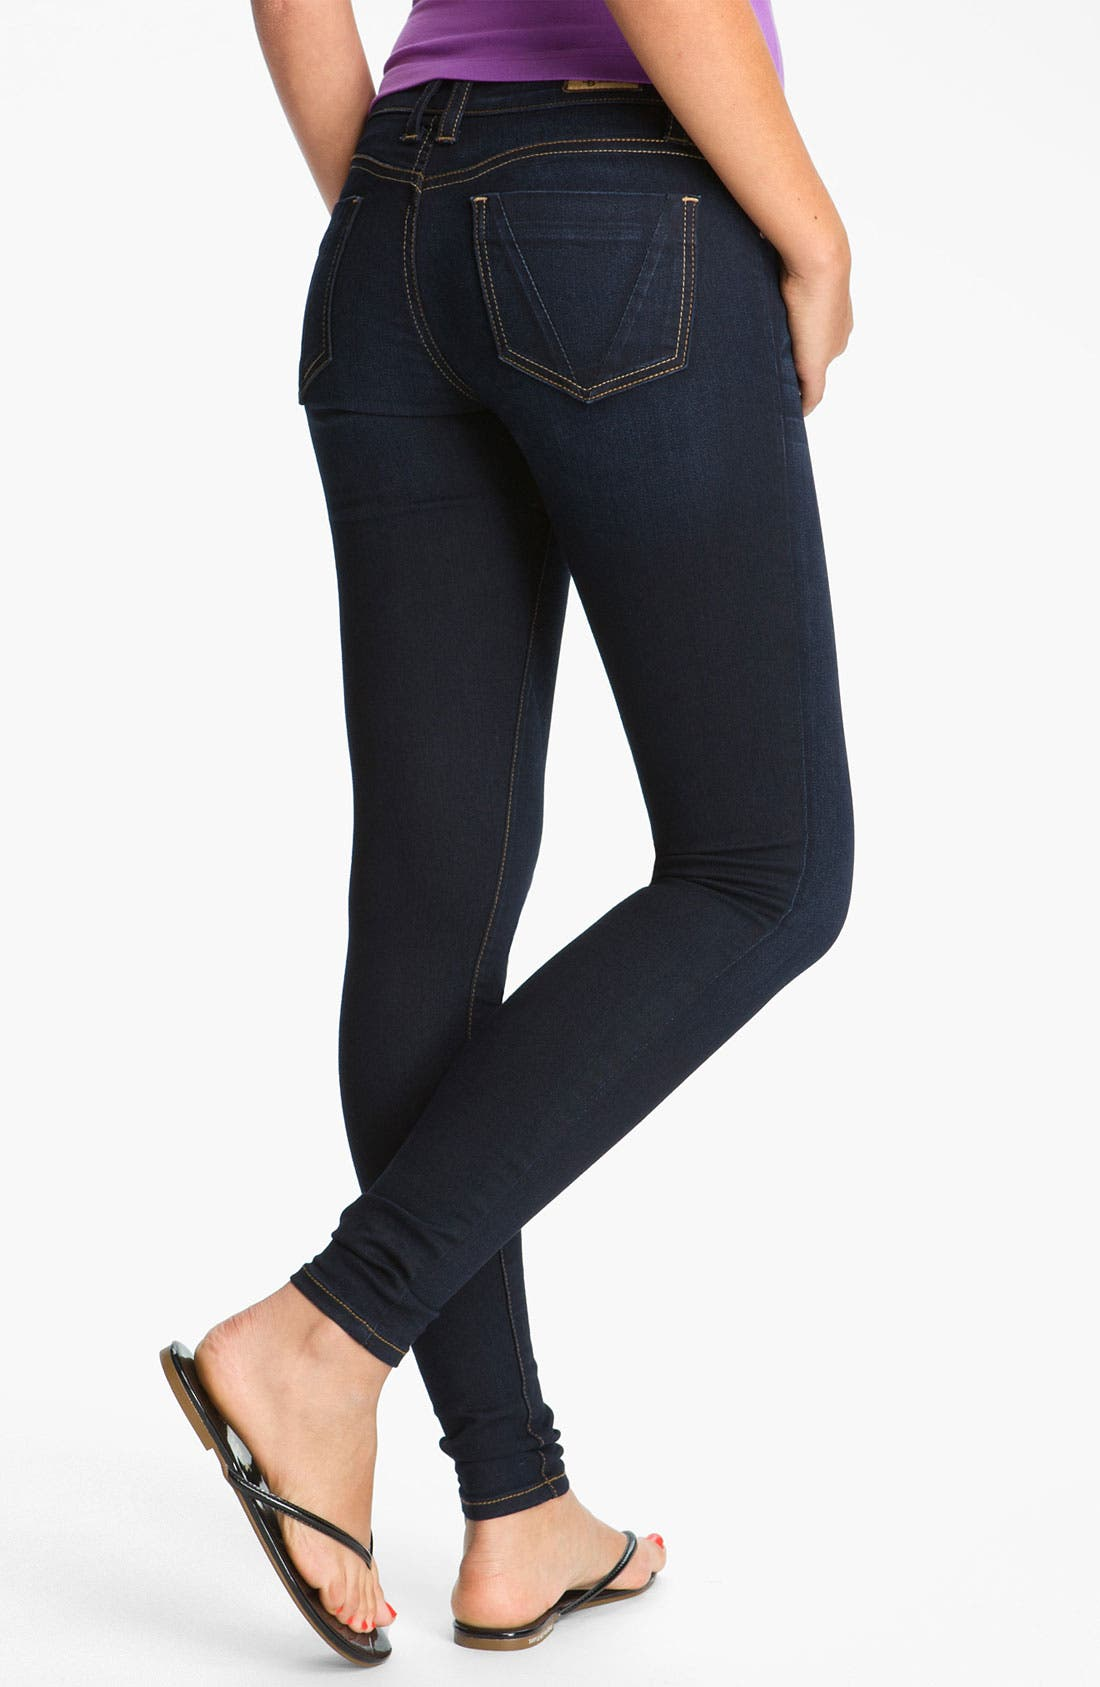 Alternate Image 2  - STS Blue Skinny Jeans (Brisbane Dark) (Juniors) (Online Only)